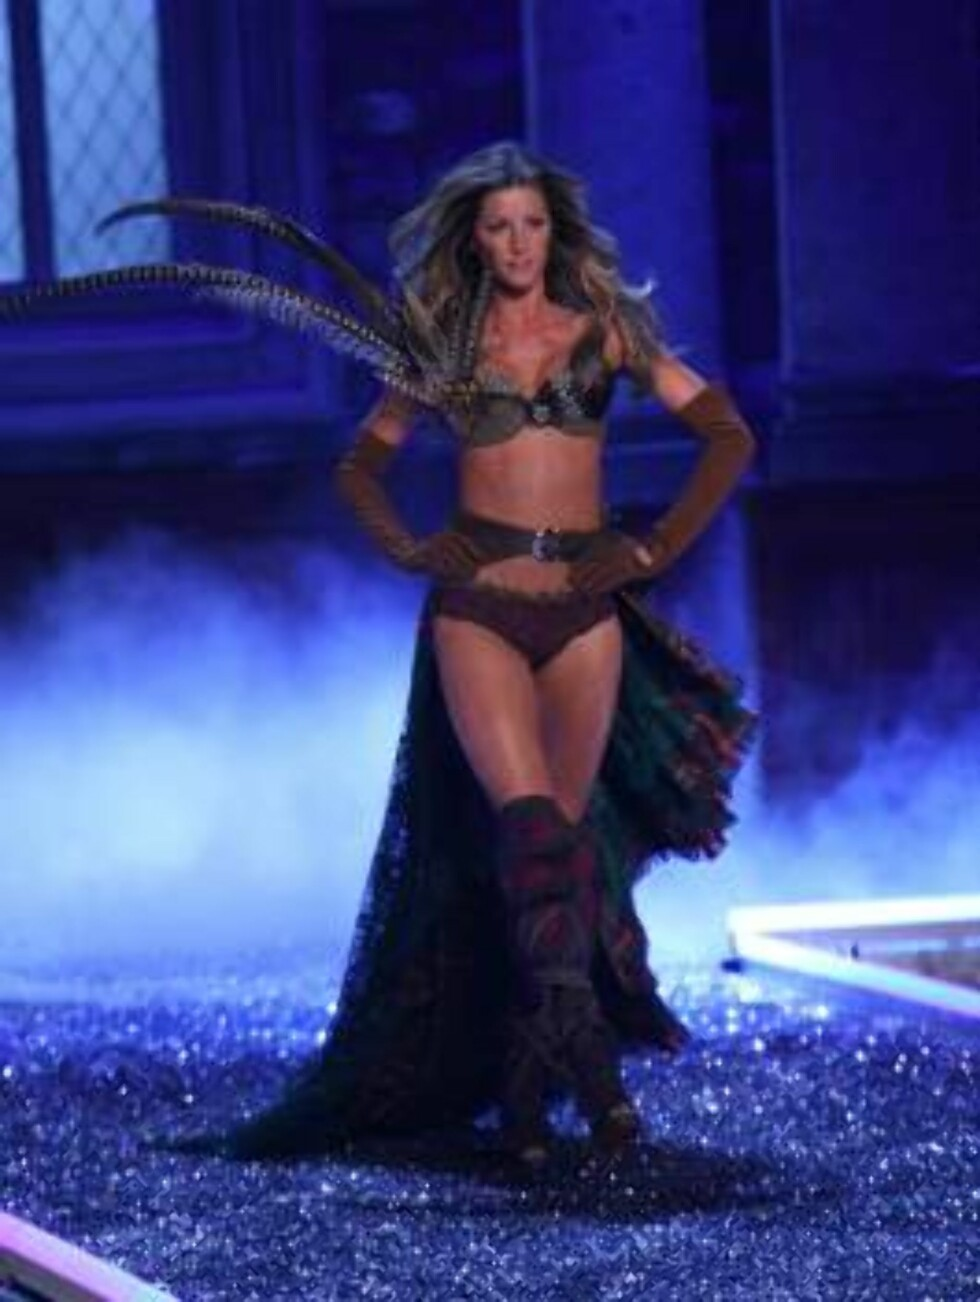 HOLLYWOOD 2006-11-16  Gisele Bundchen at the Victoria Secret's Fashion Show - Runway and Performance by Justin Timberlake, held at Kodak Theater.  Photo: Evans Ward/jpistudios  Code: 4036  COPYRIGHT STELLA PICTURES Foto: STELLA PICTURES